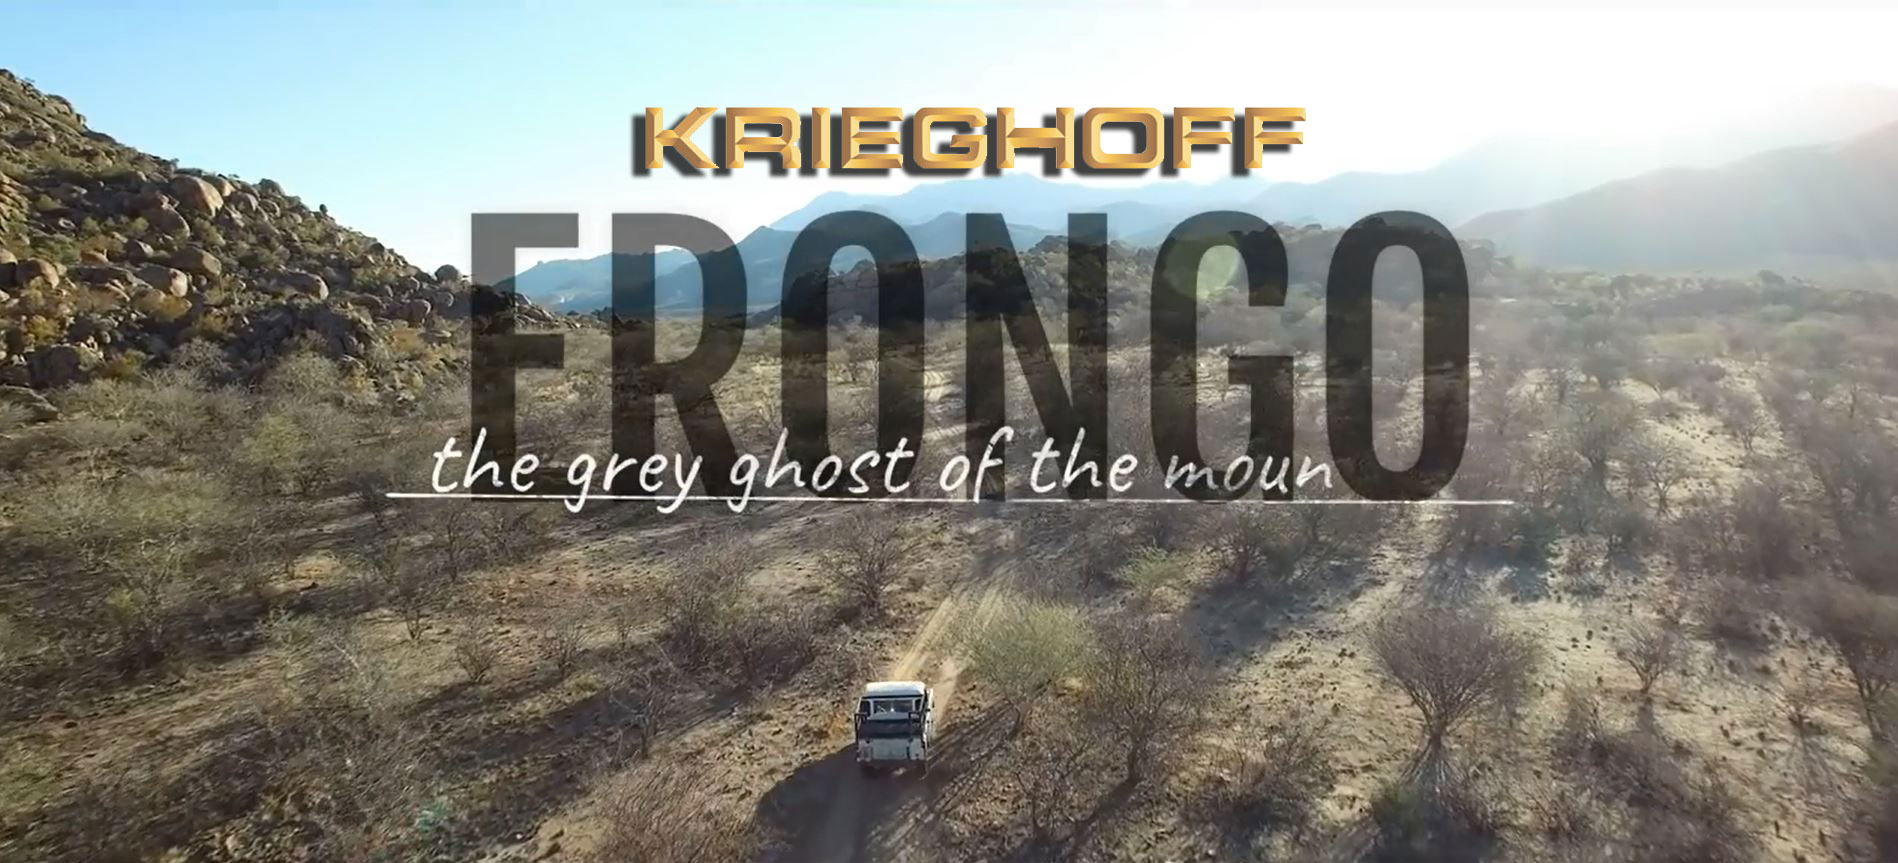 Hunting in the Erongo mountains of Namibia with Krieghoff